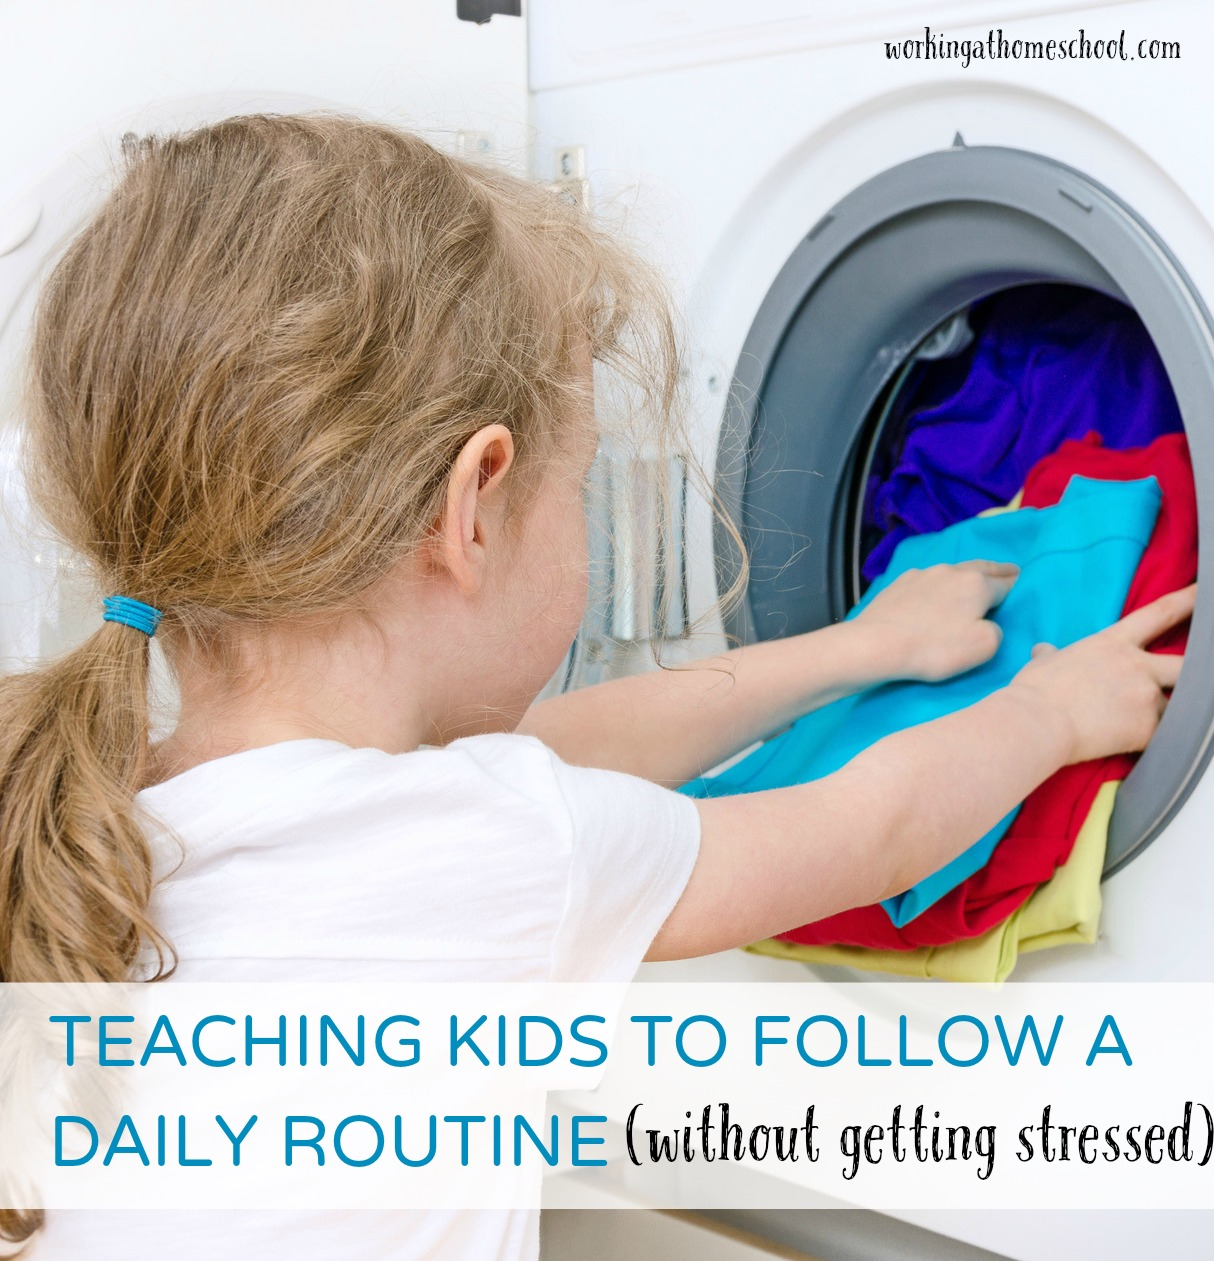 Teaching Kids to Follow a Routine